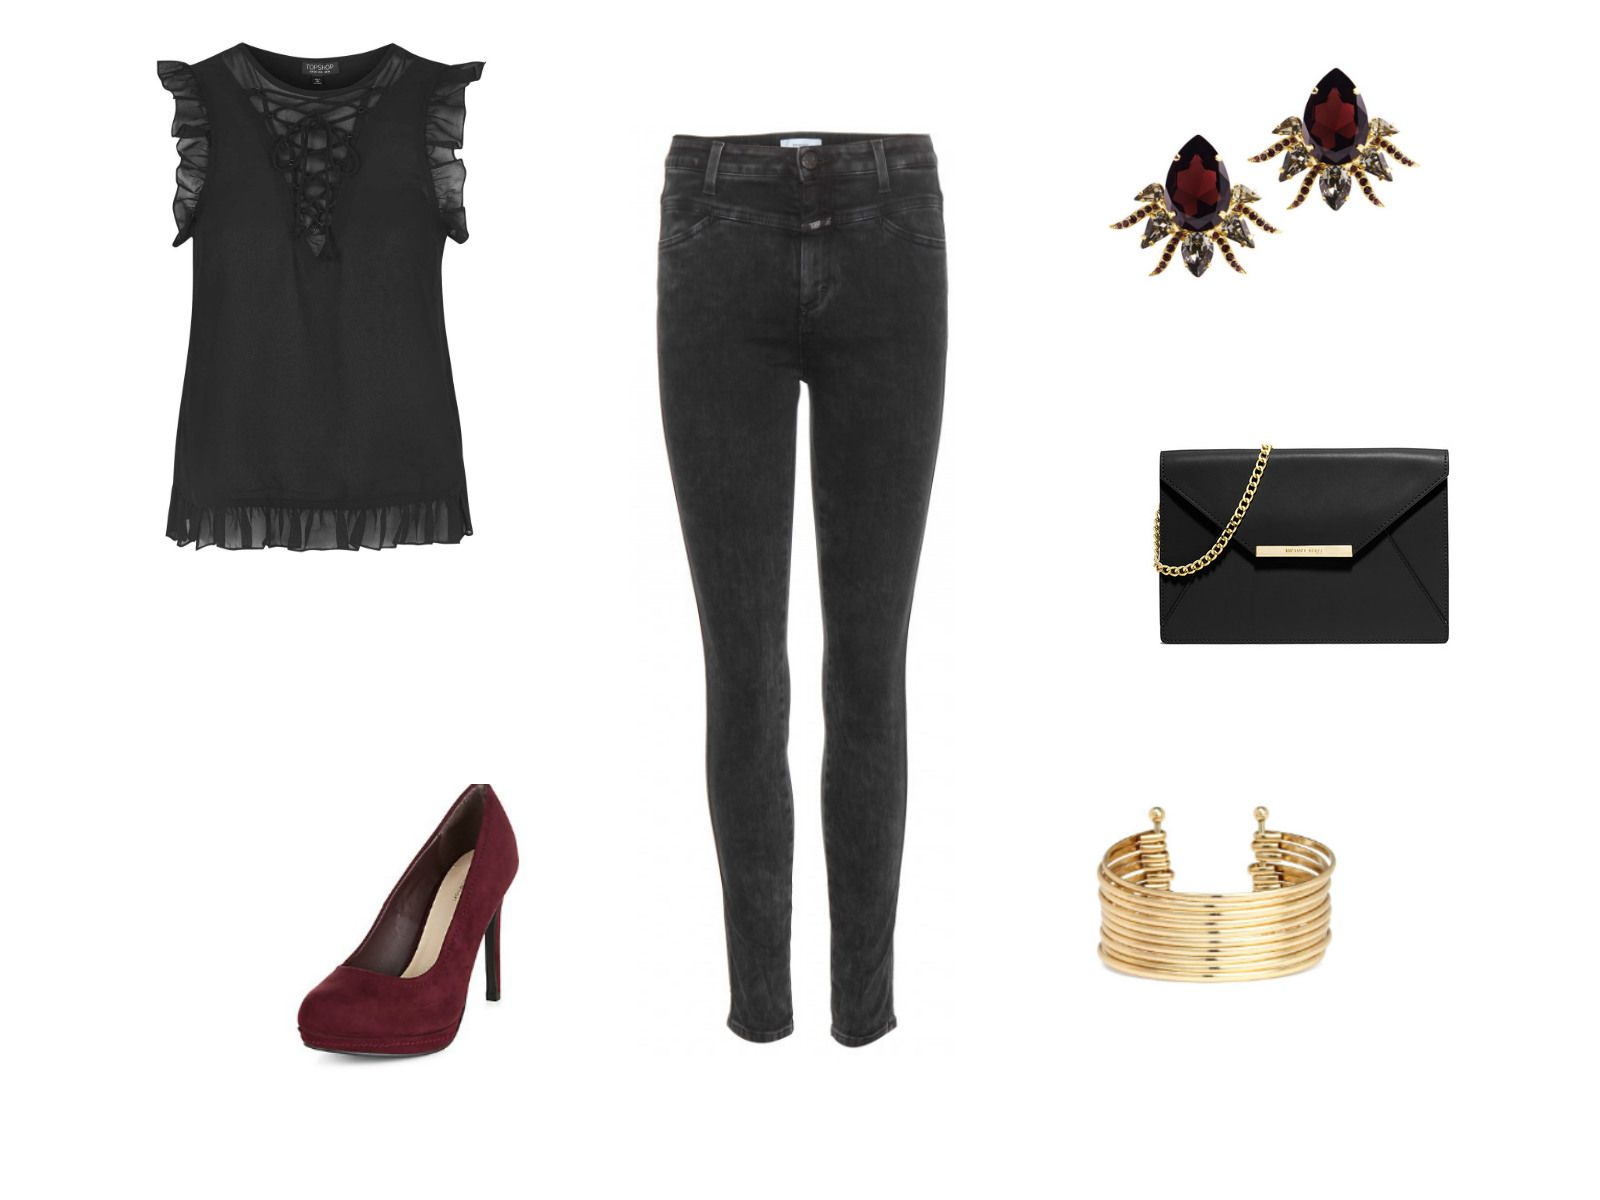 a2db81bcc281 Holiday Dinner Party Outfit. Black top and jeans outfit